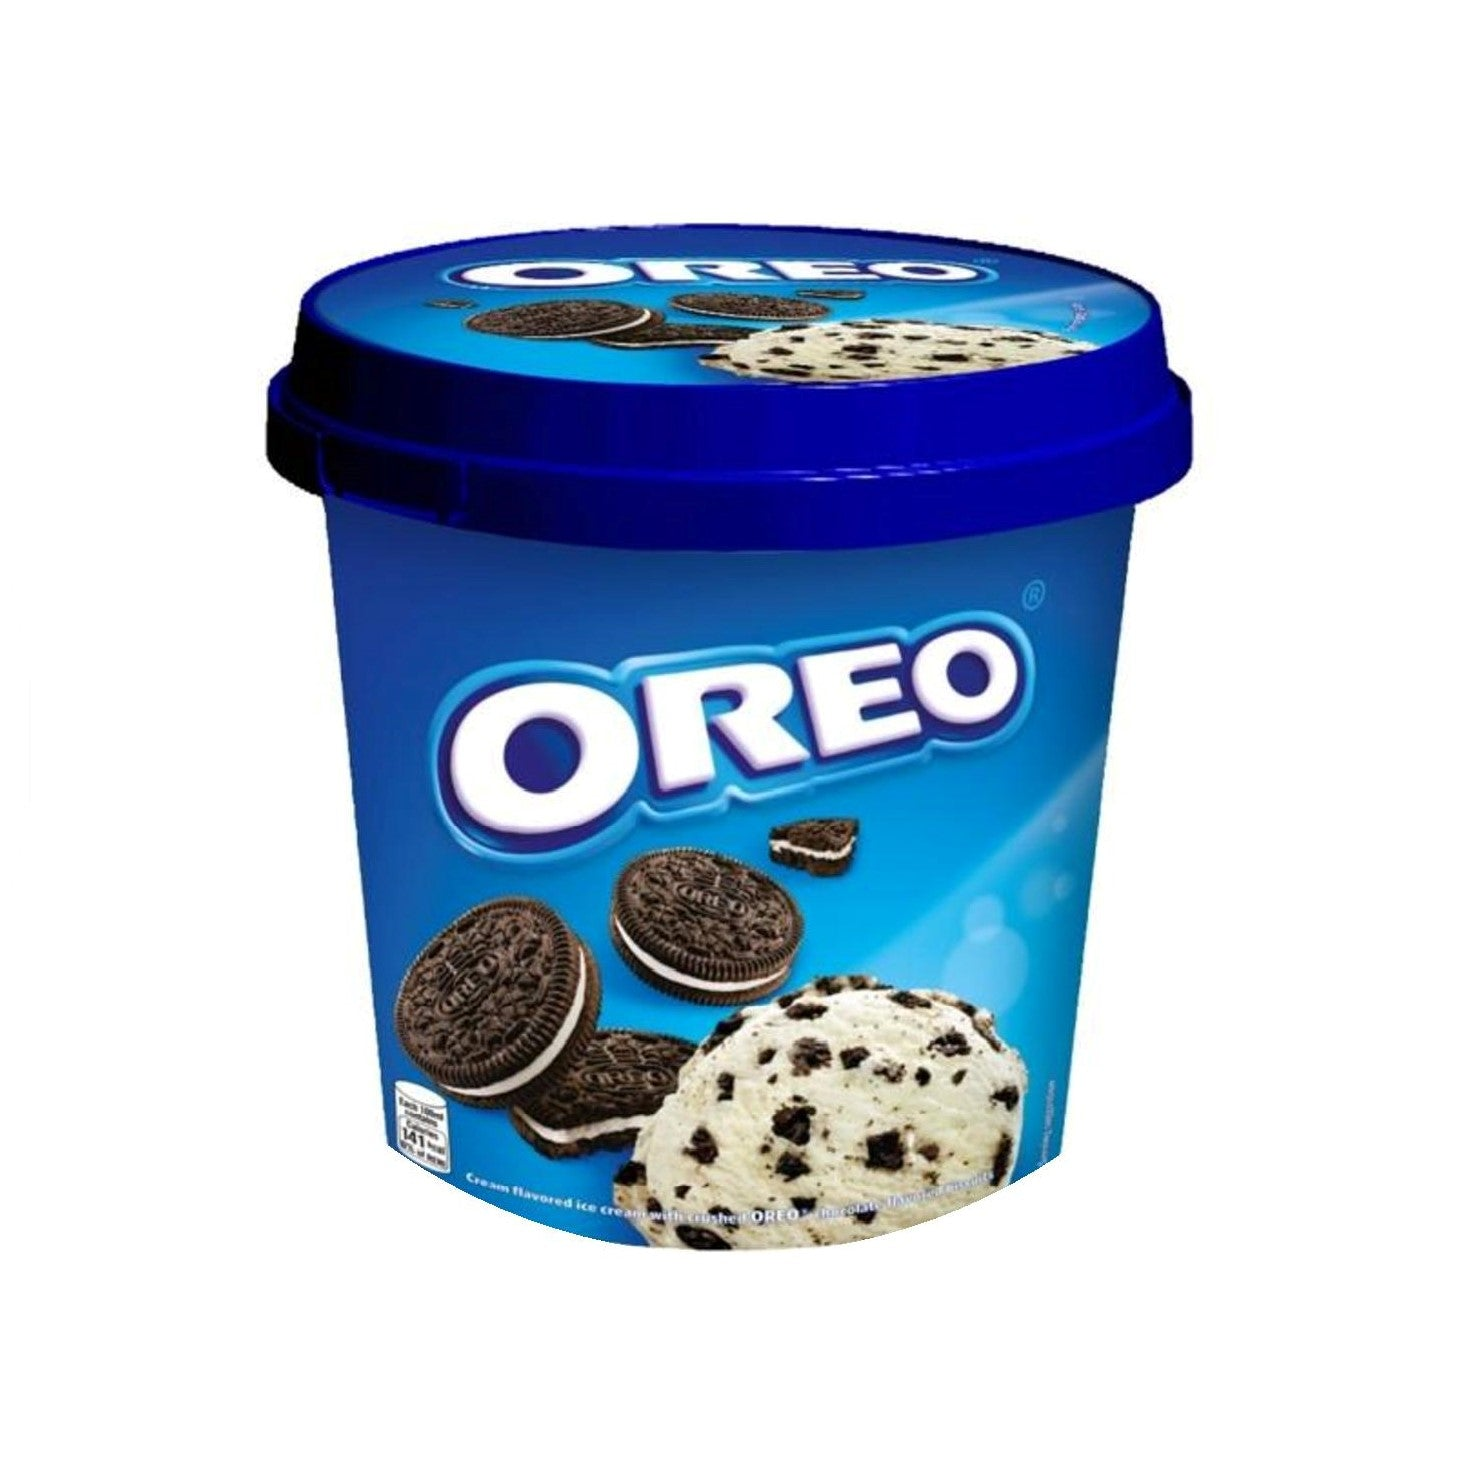 Oreo Ice Cream Pint